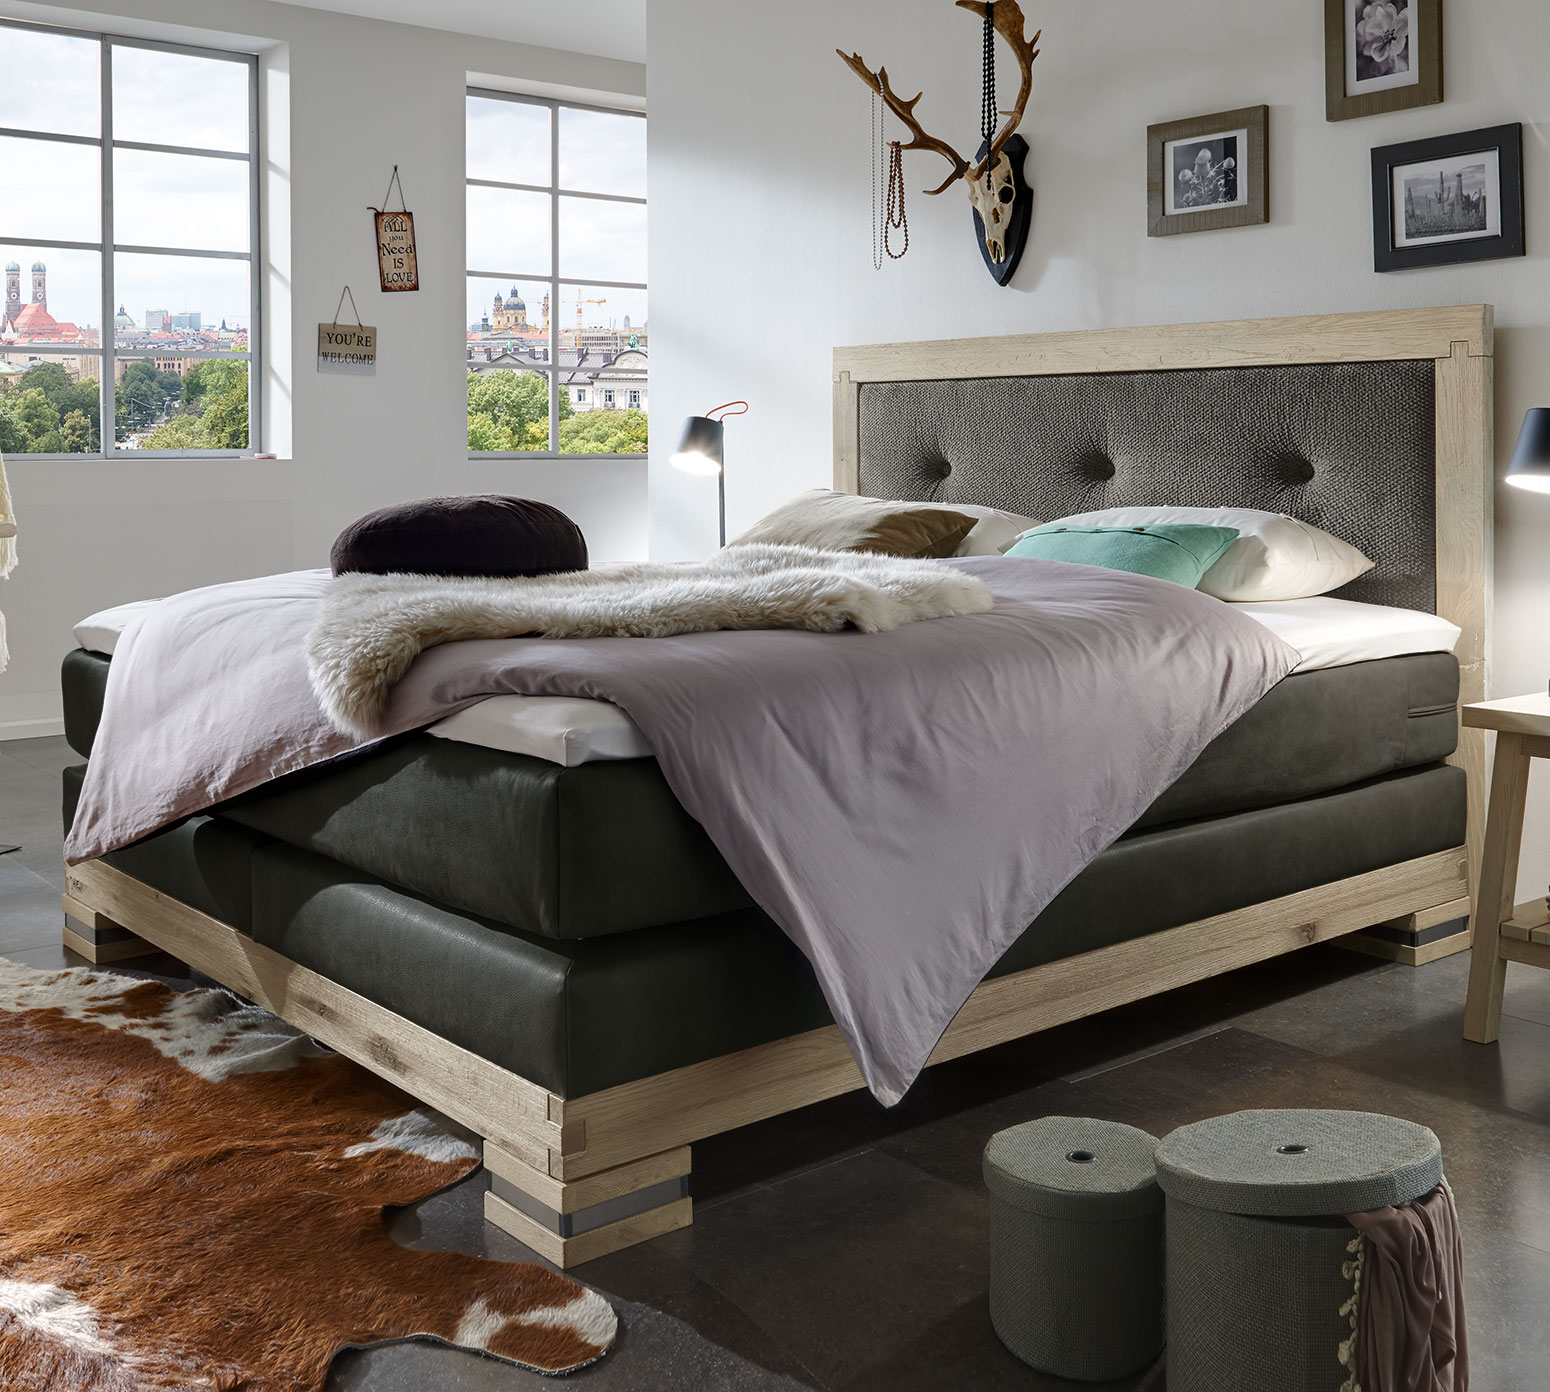 boxspringbett aus massivholz im landhausstil cesarino. Black Bedroom Furniture Sets. Home Design Ideas